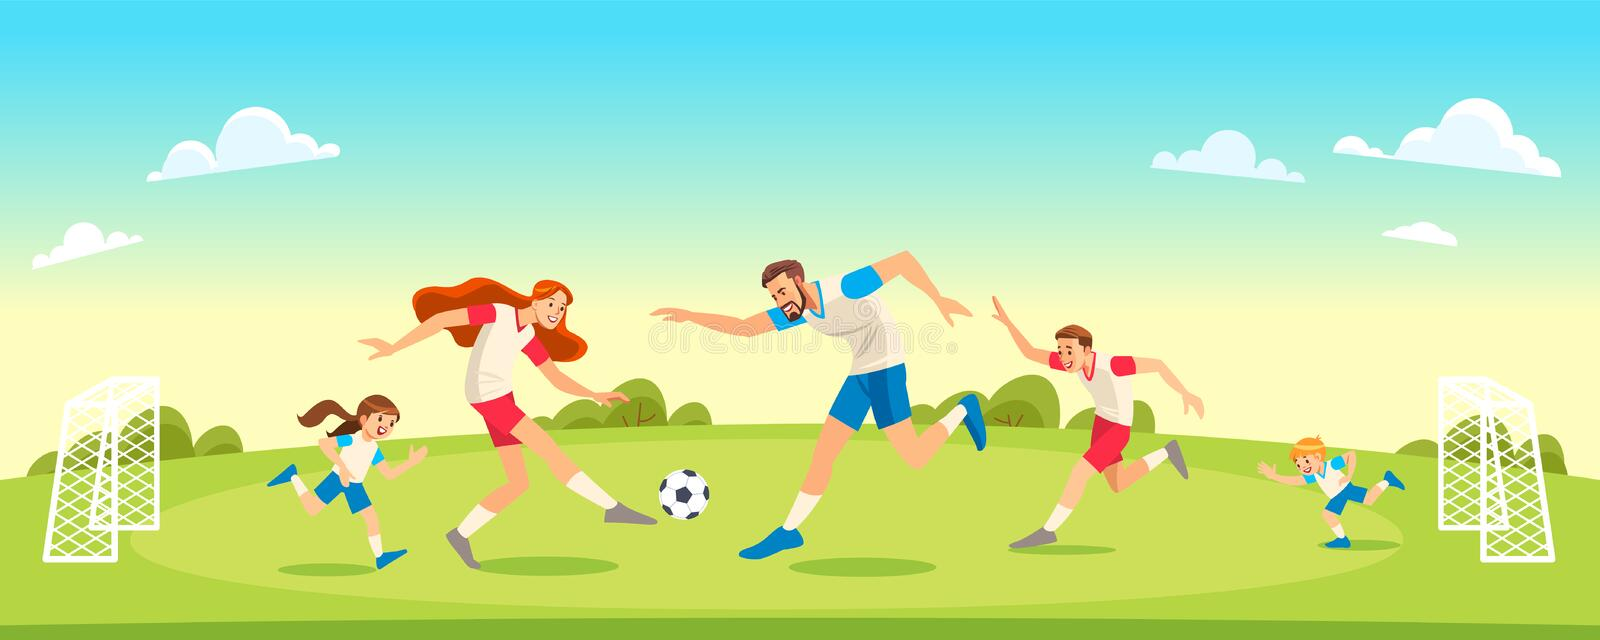 Family Playing Soccer In Park Together. Concept Parenthood child-rearing. Vector illustration. stock photo